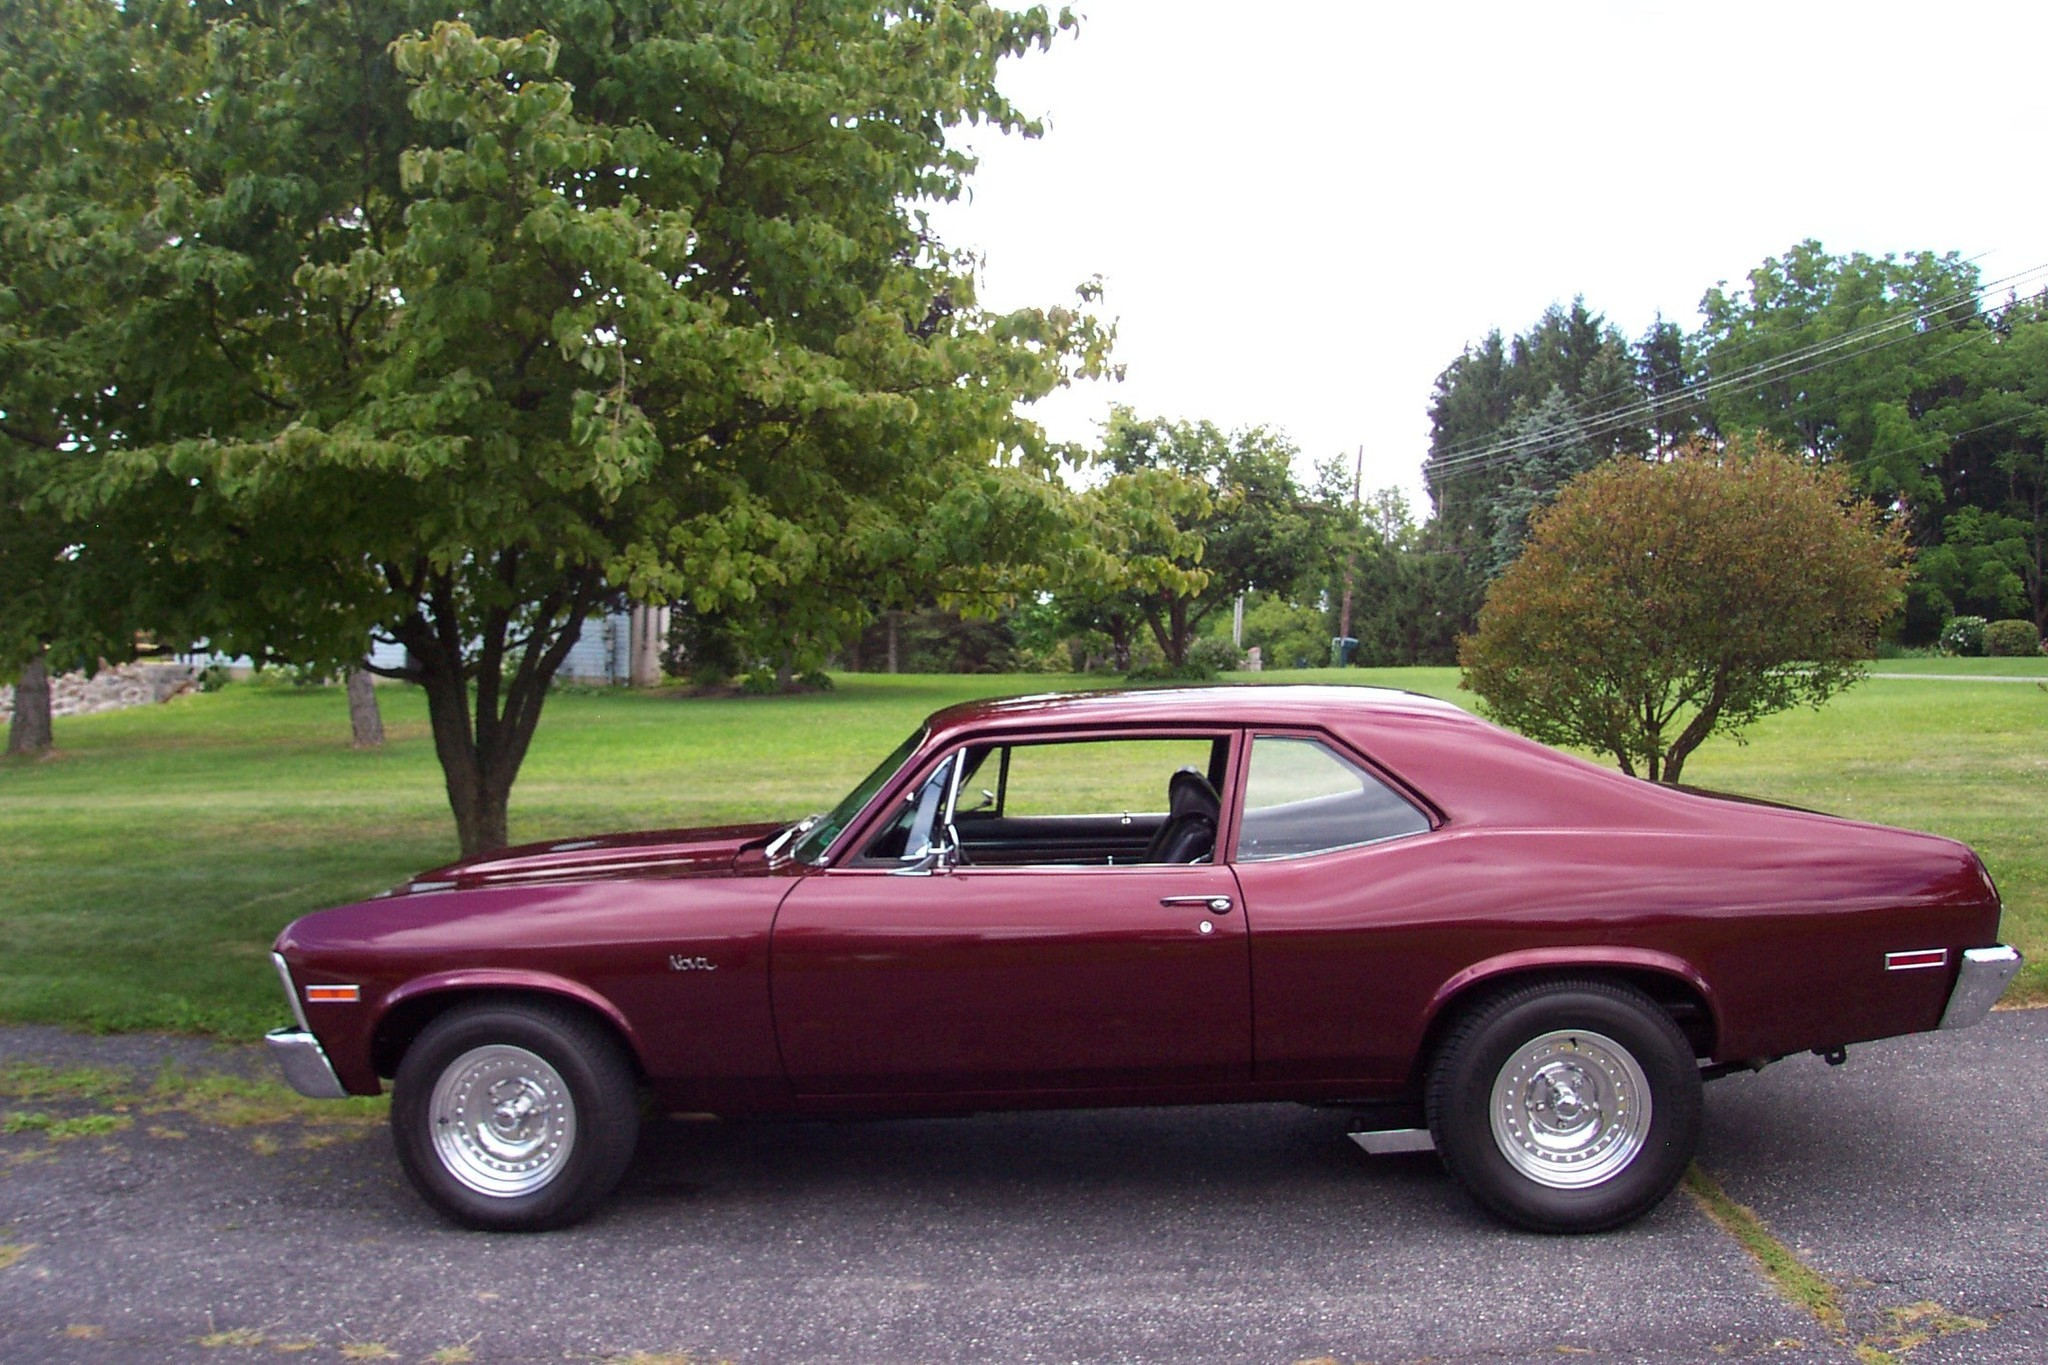 Best American Muscle Car >> 1972 Chevy Nova - The Morning Call